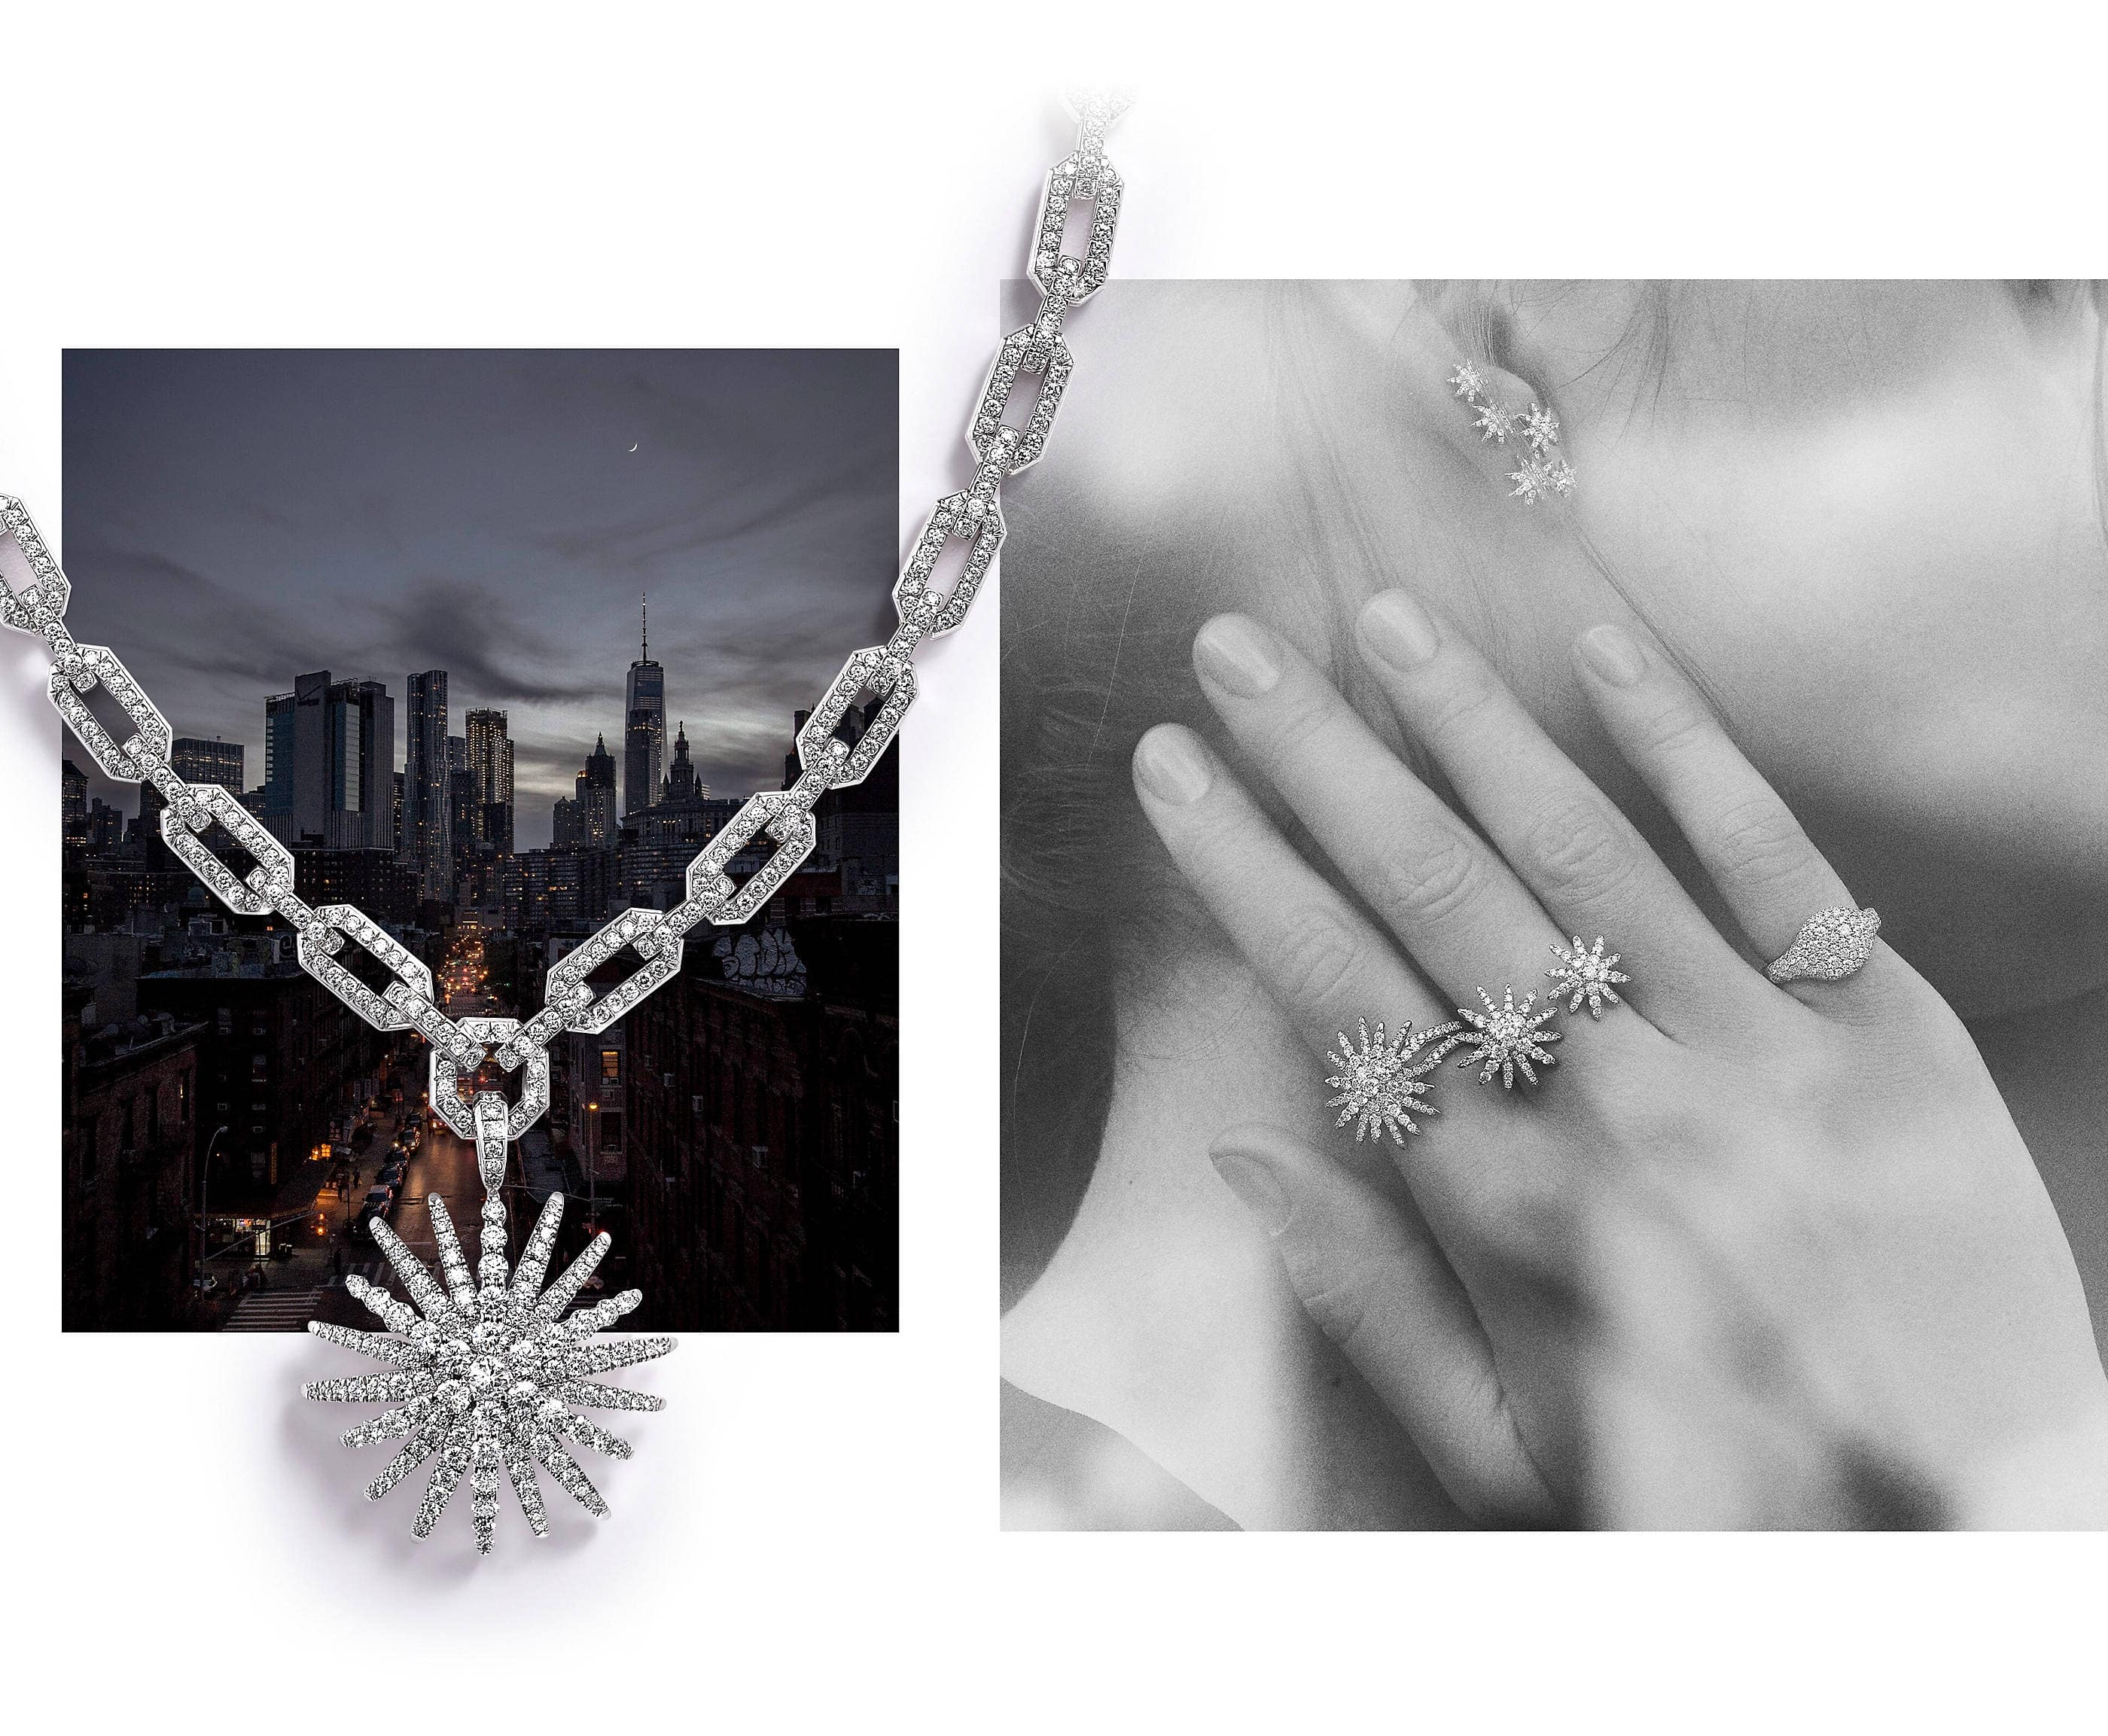 An image of David Yurman climber earrings, a bypass ring and a statement ring from the Starburst Collection along with a pinky ring. Atop the left photo is a David Yurman Starburst pendant and chain necklace with soft shadows. The jewelry is crafted from 18K white gold with pavé diamonds.